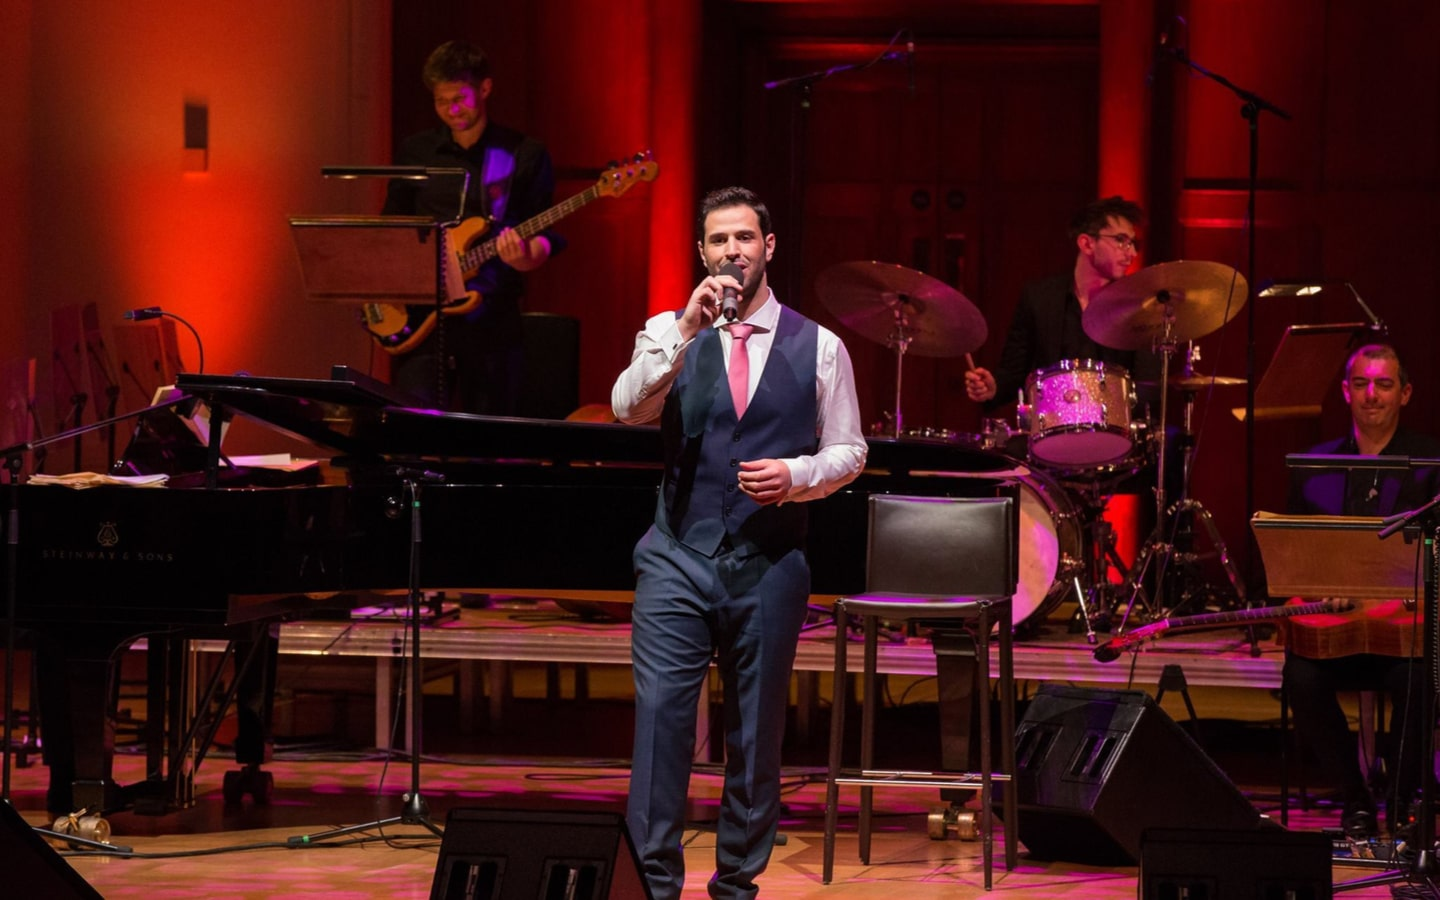 Omar Kamal singing on stage with musicians in background, performer at the upcoming shows at Dubai Opera